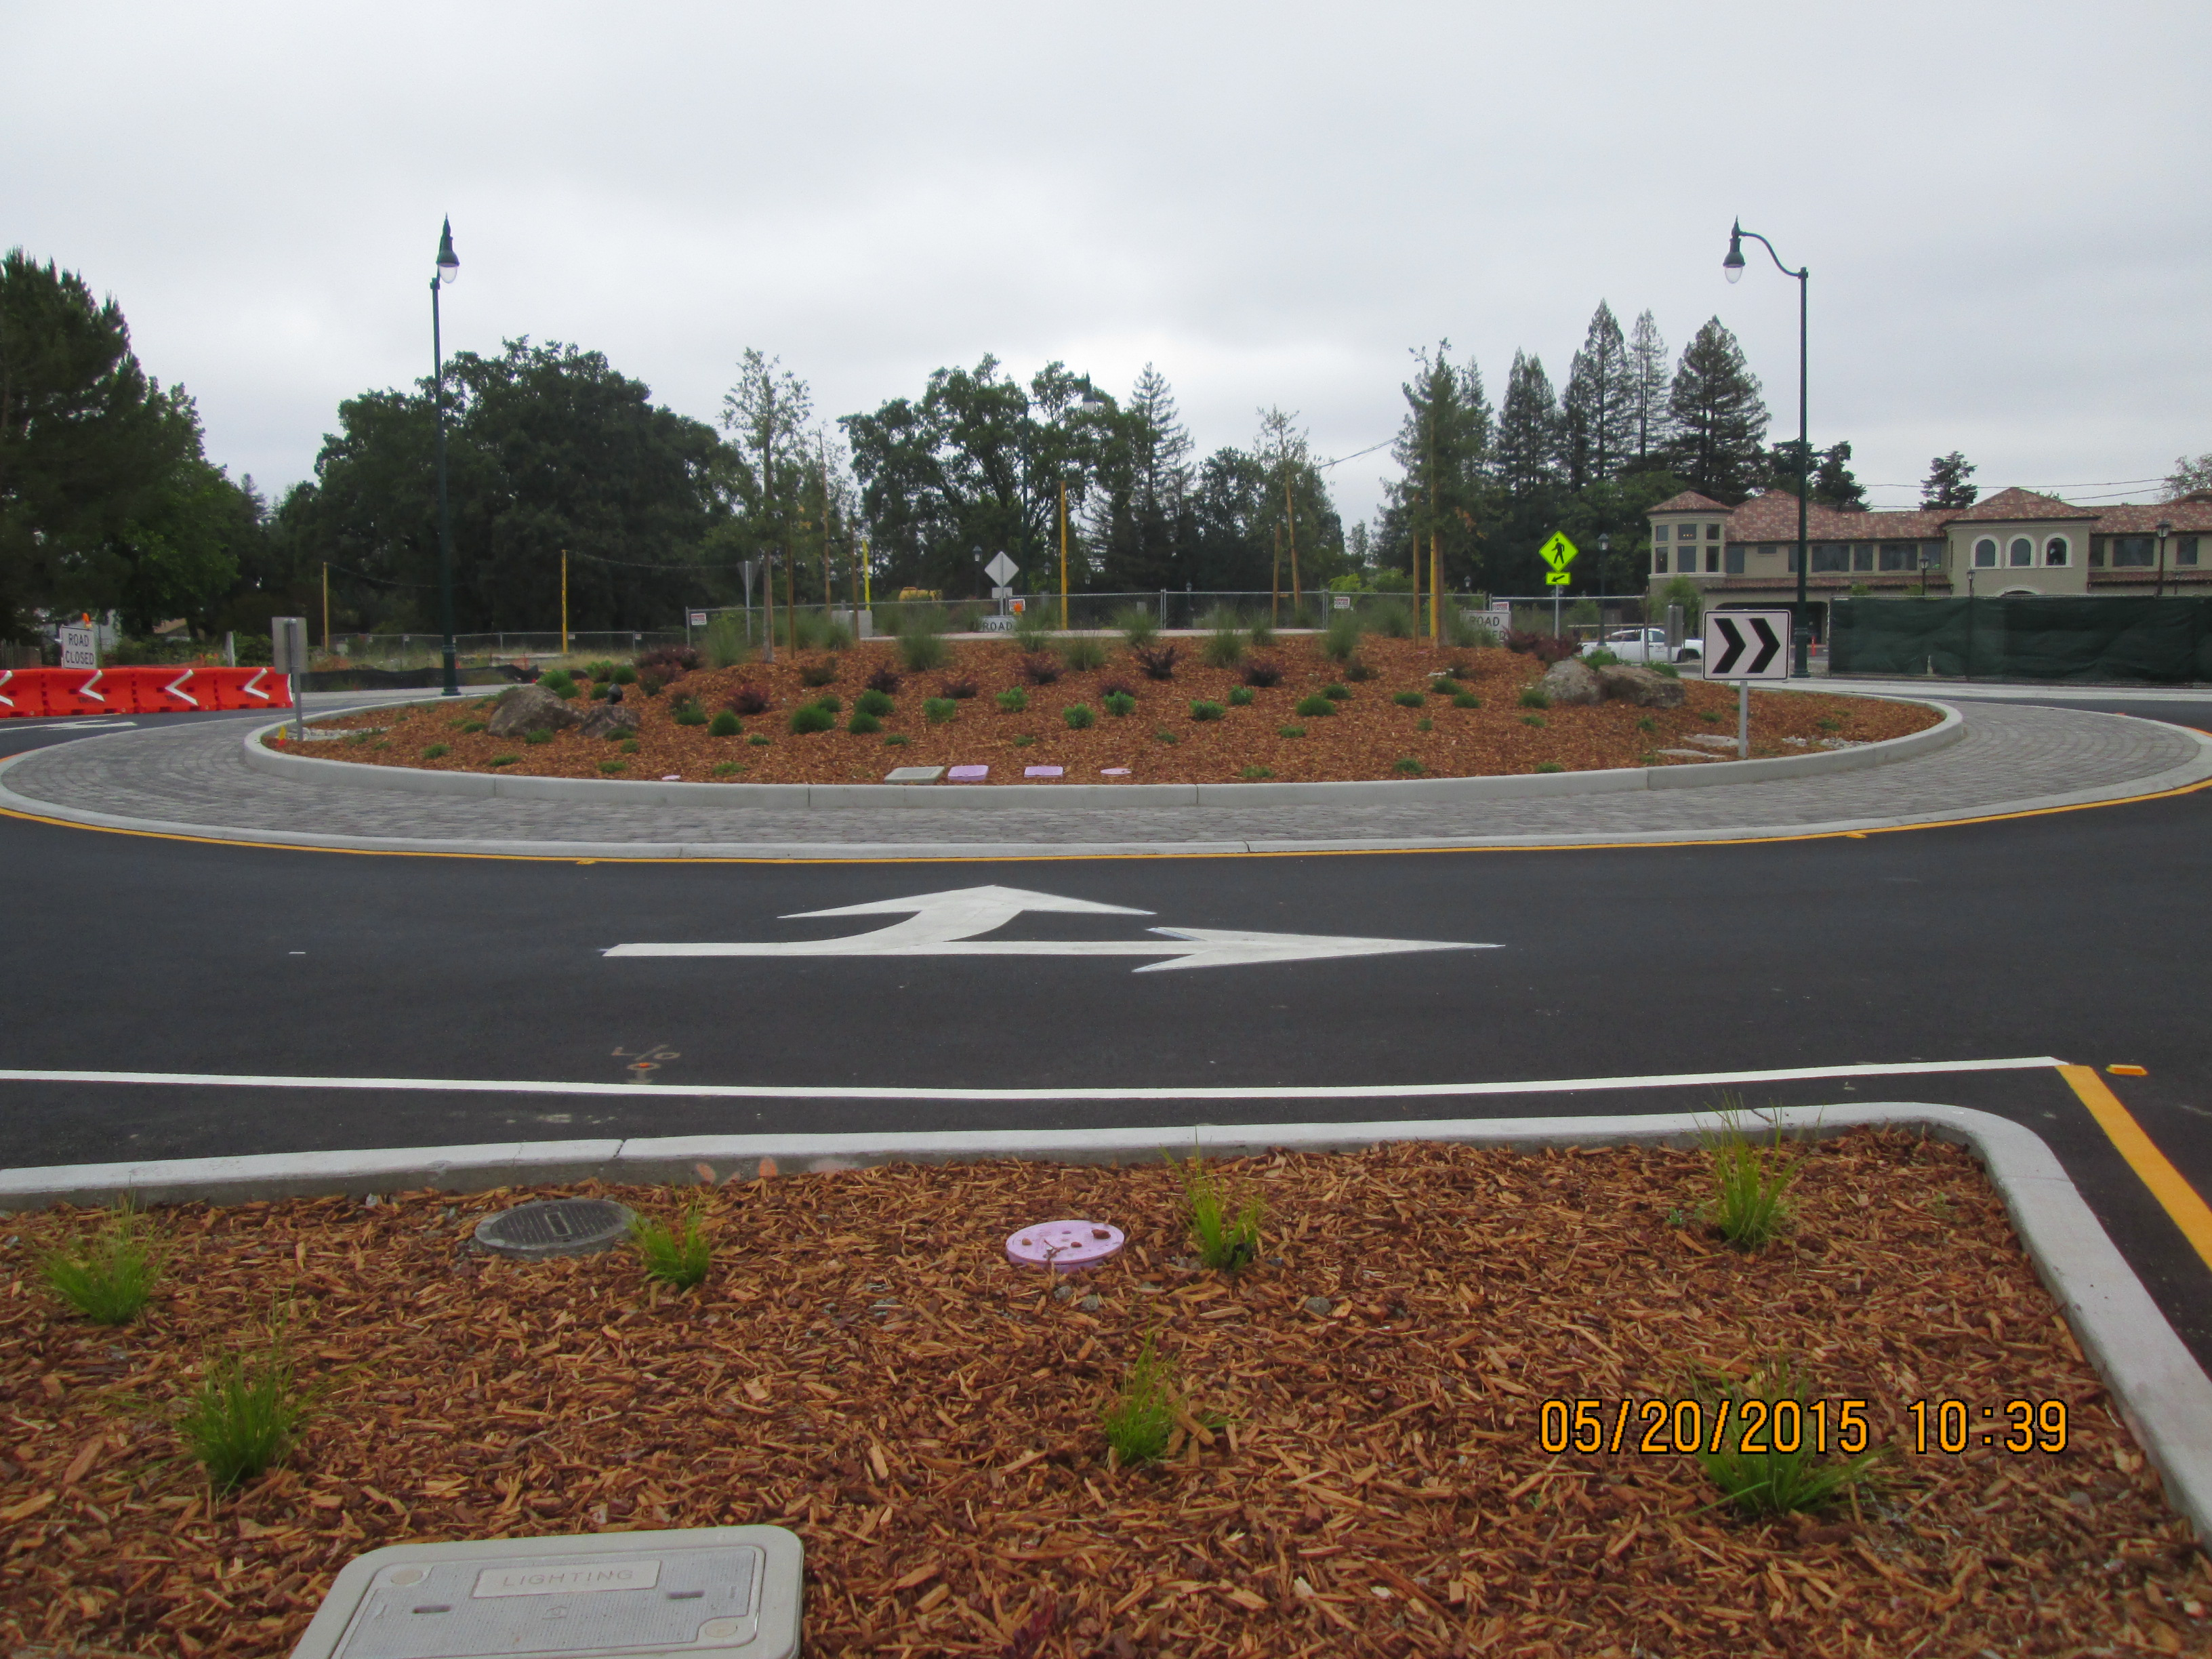 The same roundabout completed